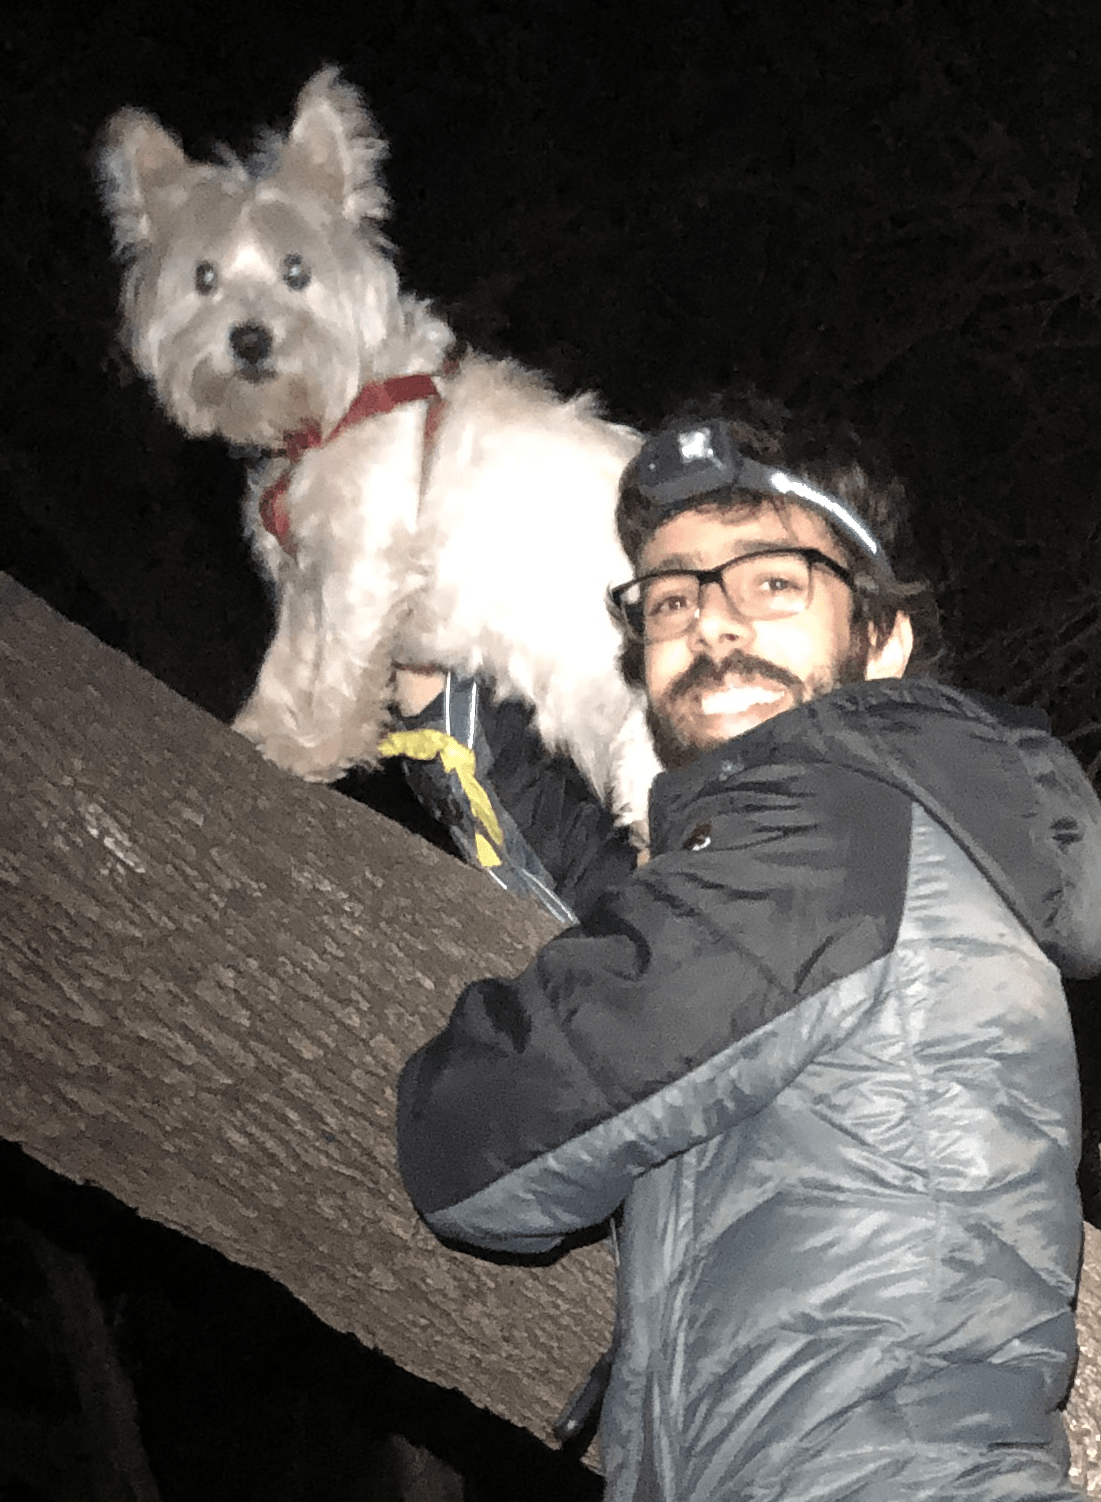 Latinx man with beard, black-rimmed glasses, and a headlamp, wearing a black and gray jacket, holding up a silky-white dog with pointy ears and a red harness on a fallen log.